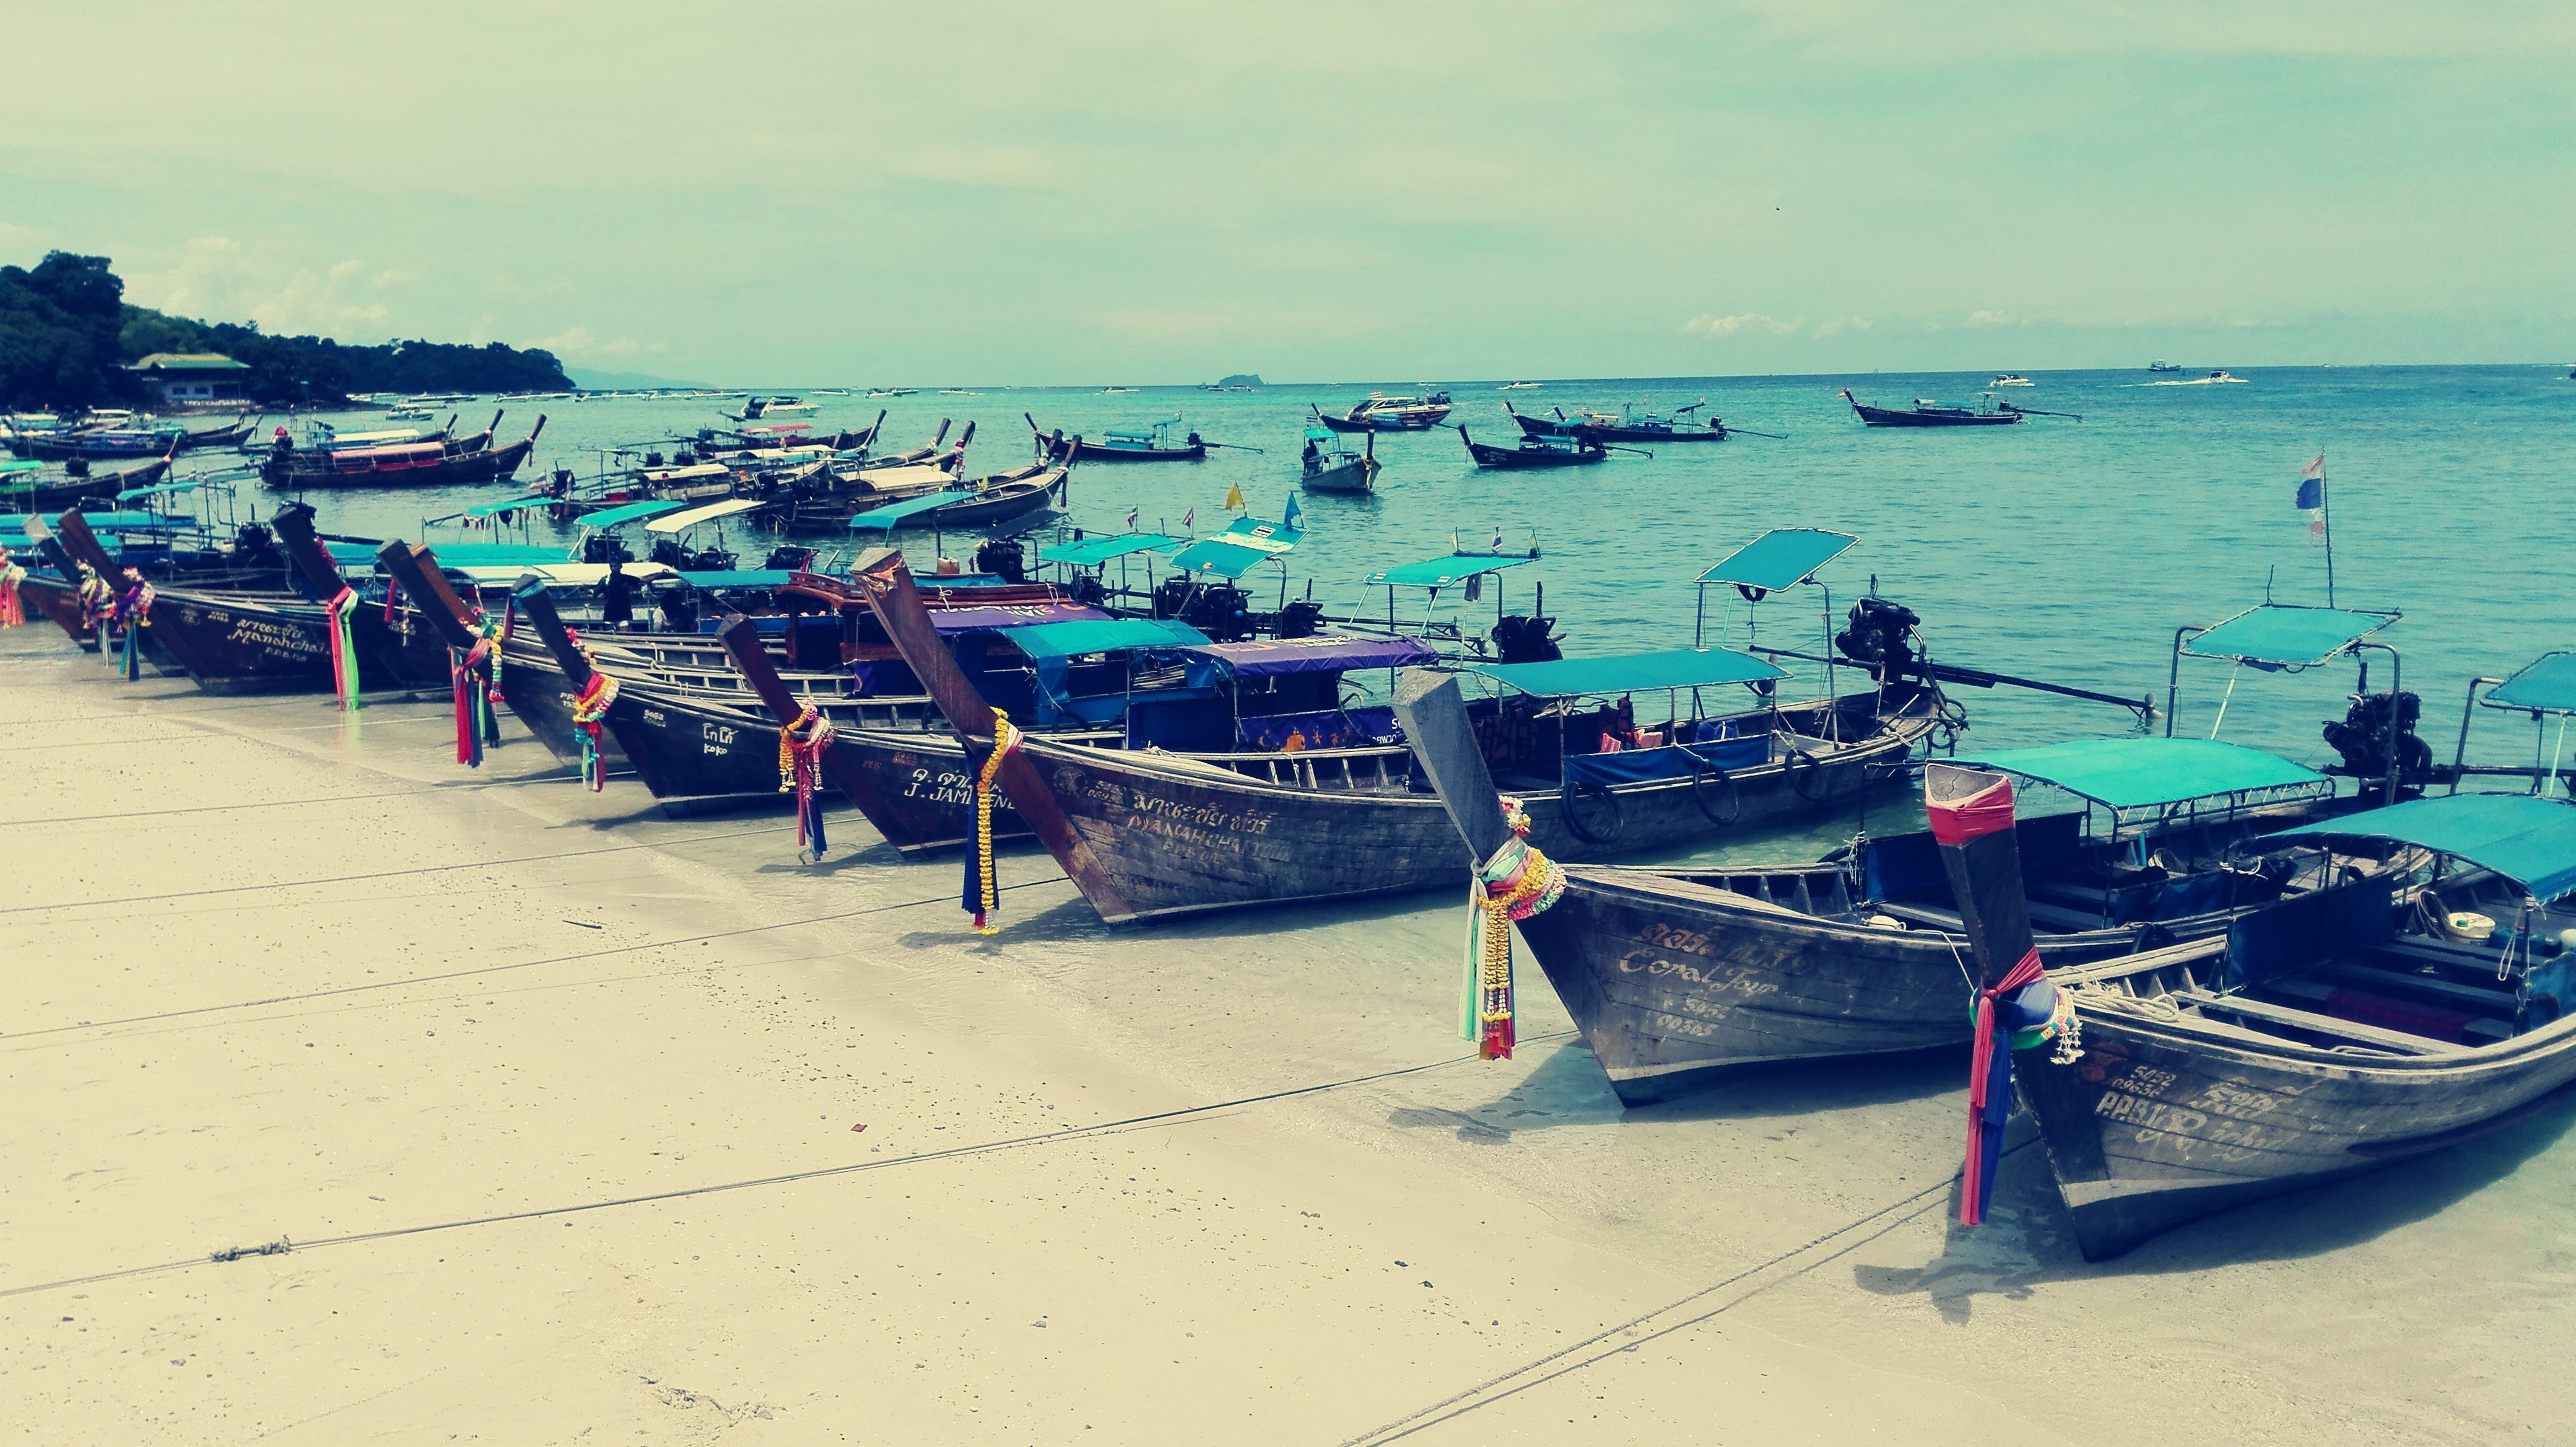 Tailandia Barcos de Koh Phi Phi - Koh Phi Phi, the most famous beach in the world